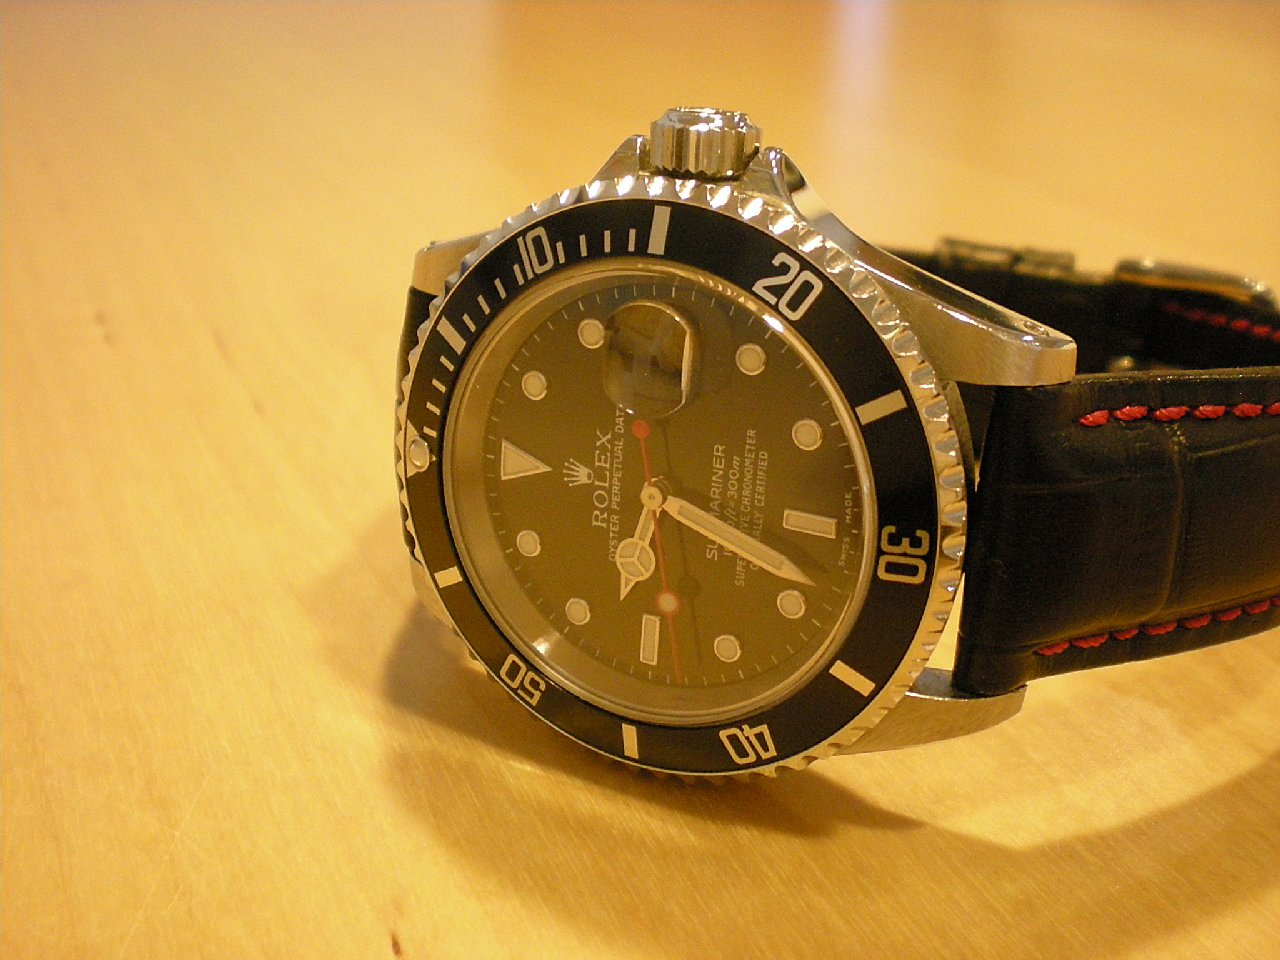 Rolex Nachbau Rolex Submariner Date 16610 Mini Mod Uhrforum